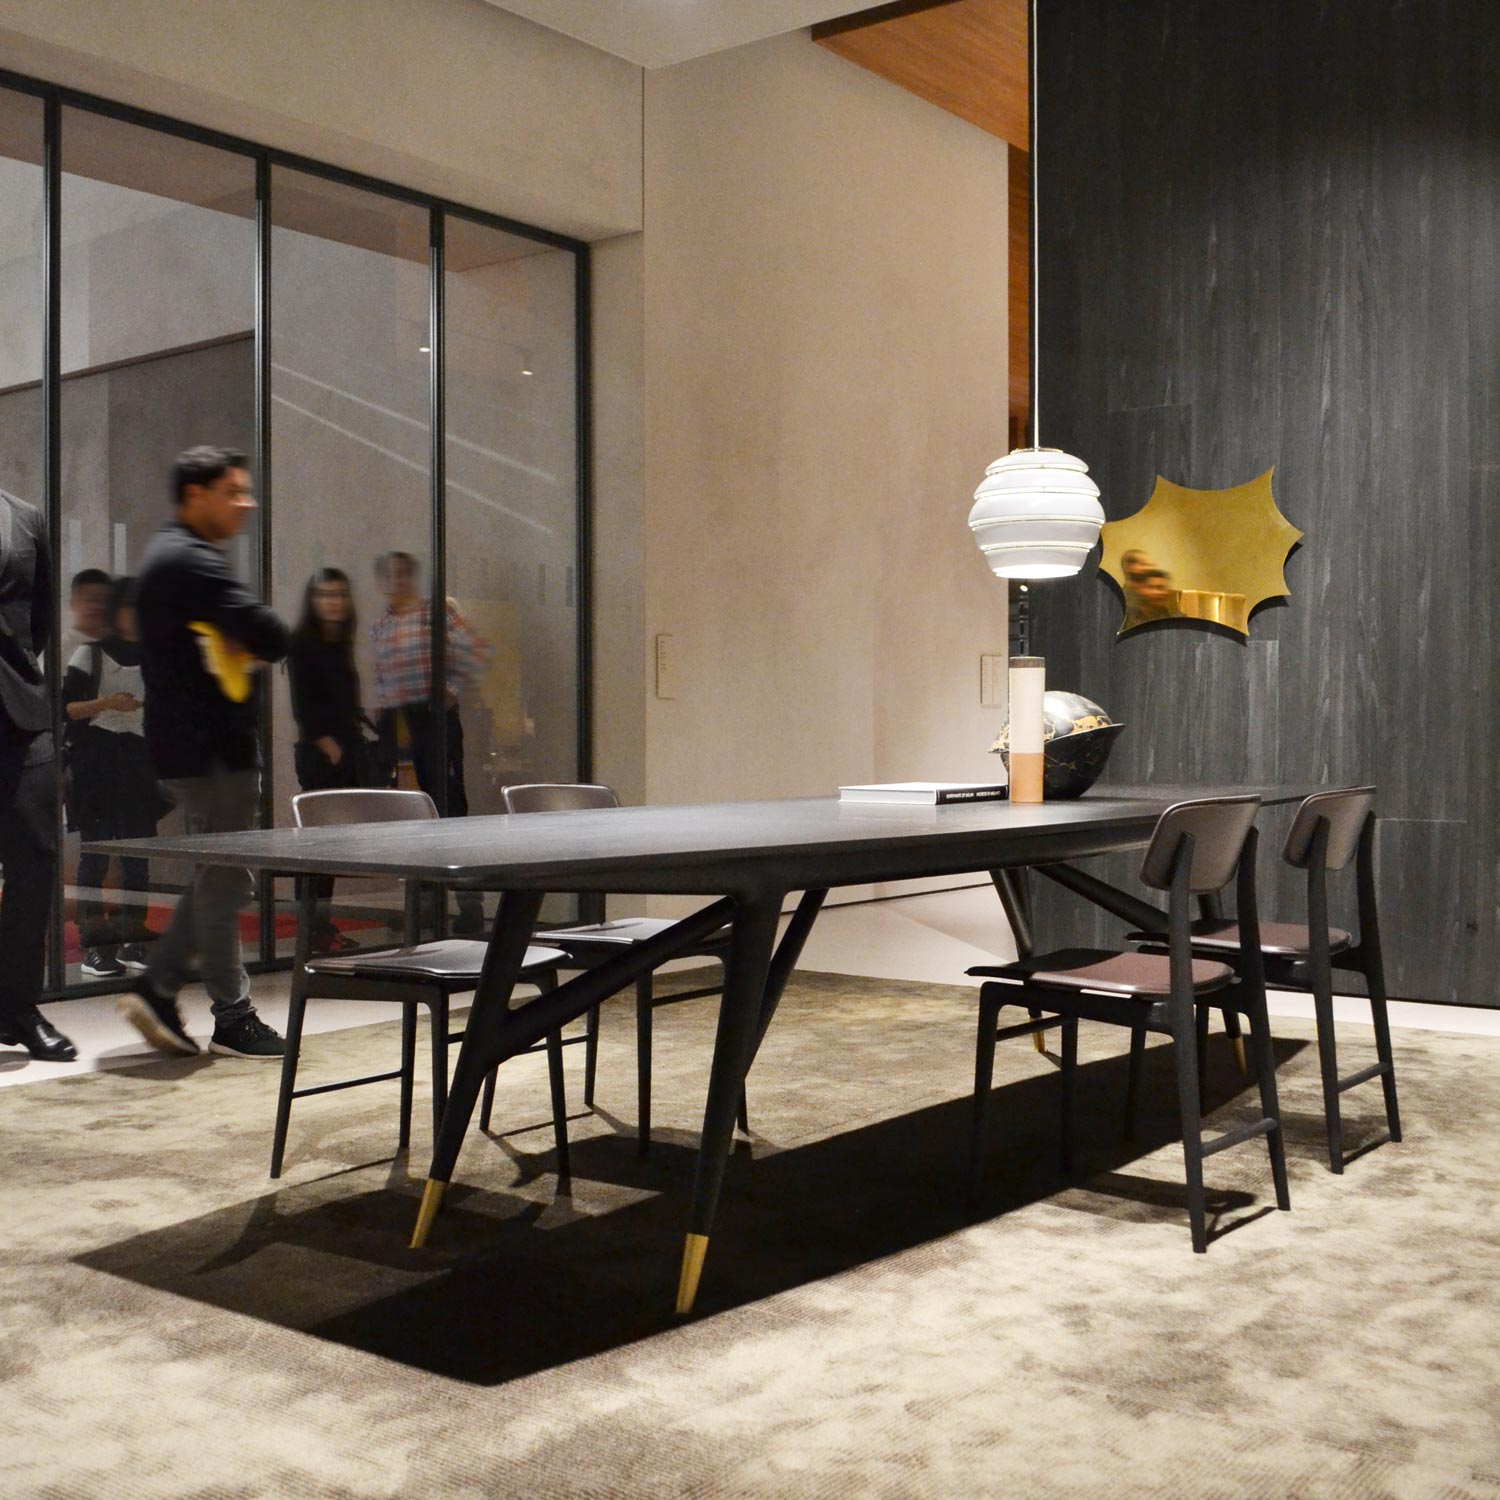 Casum Best Design 2018 Salone del Mobile Edition: table and chairs at Molteni booth